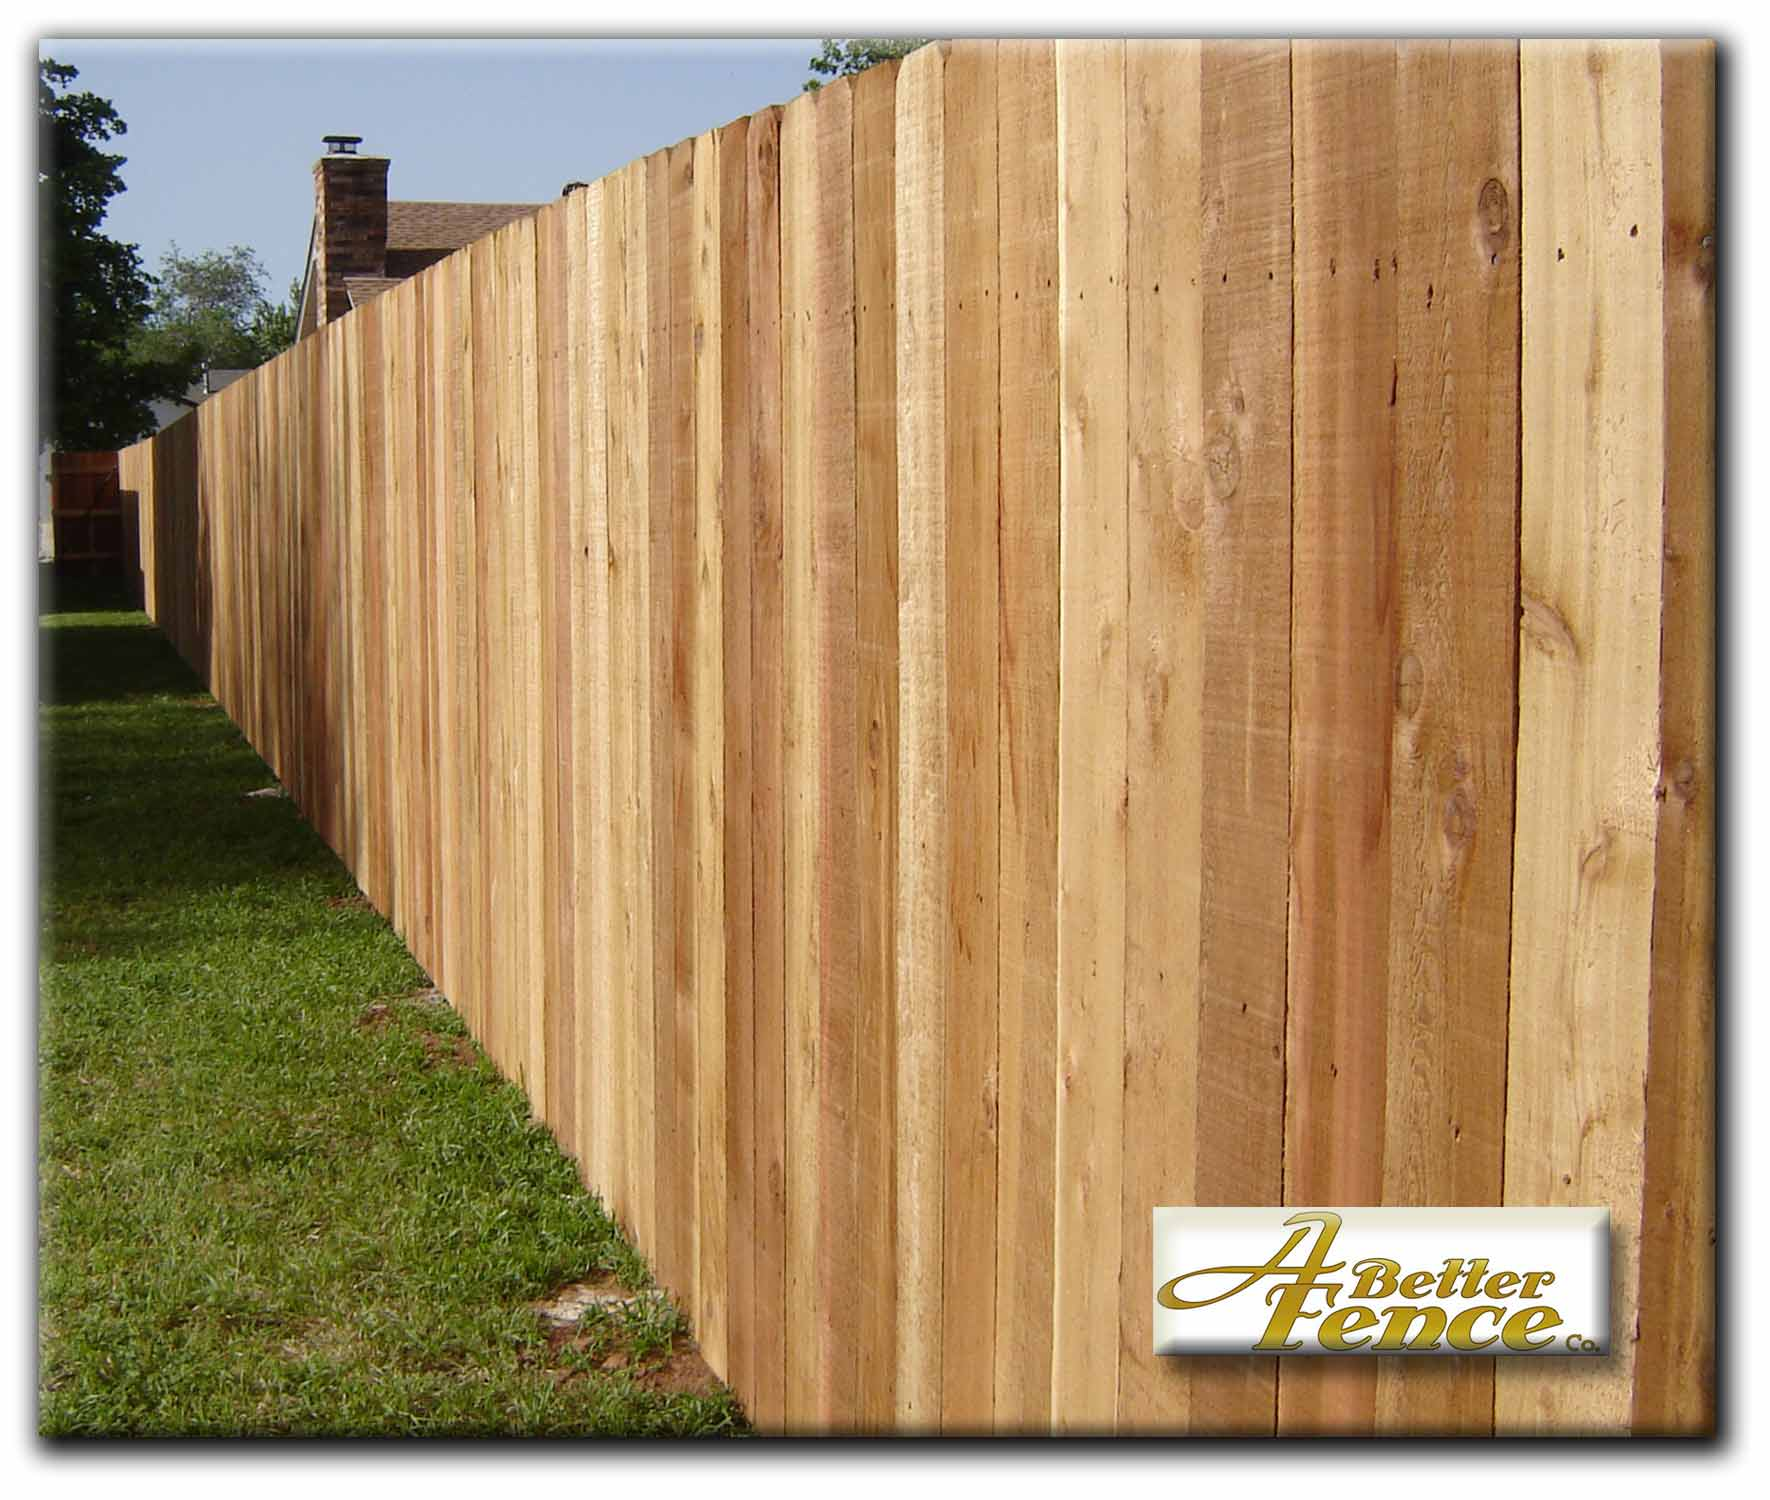 Wooden Fence Designs Privacy Fence Designs - 5 backyard fence types